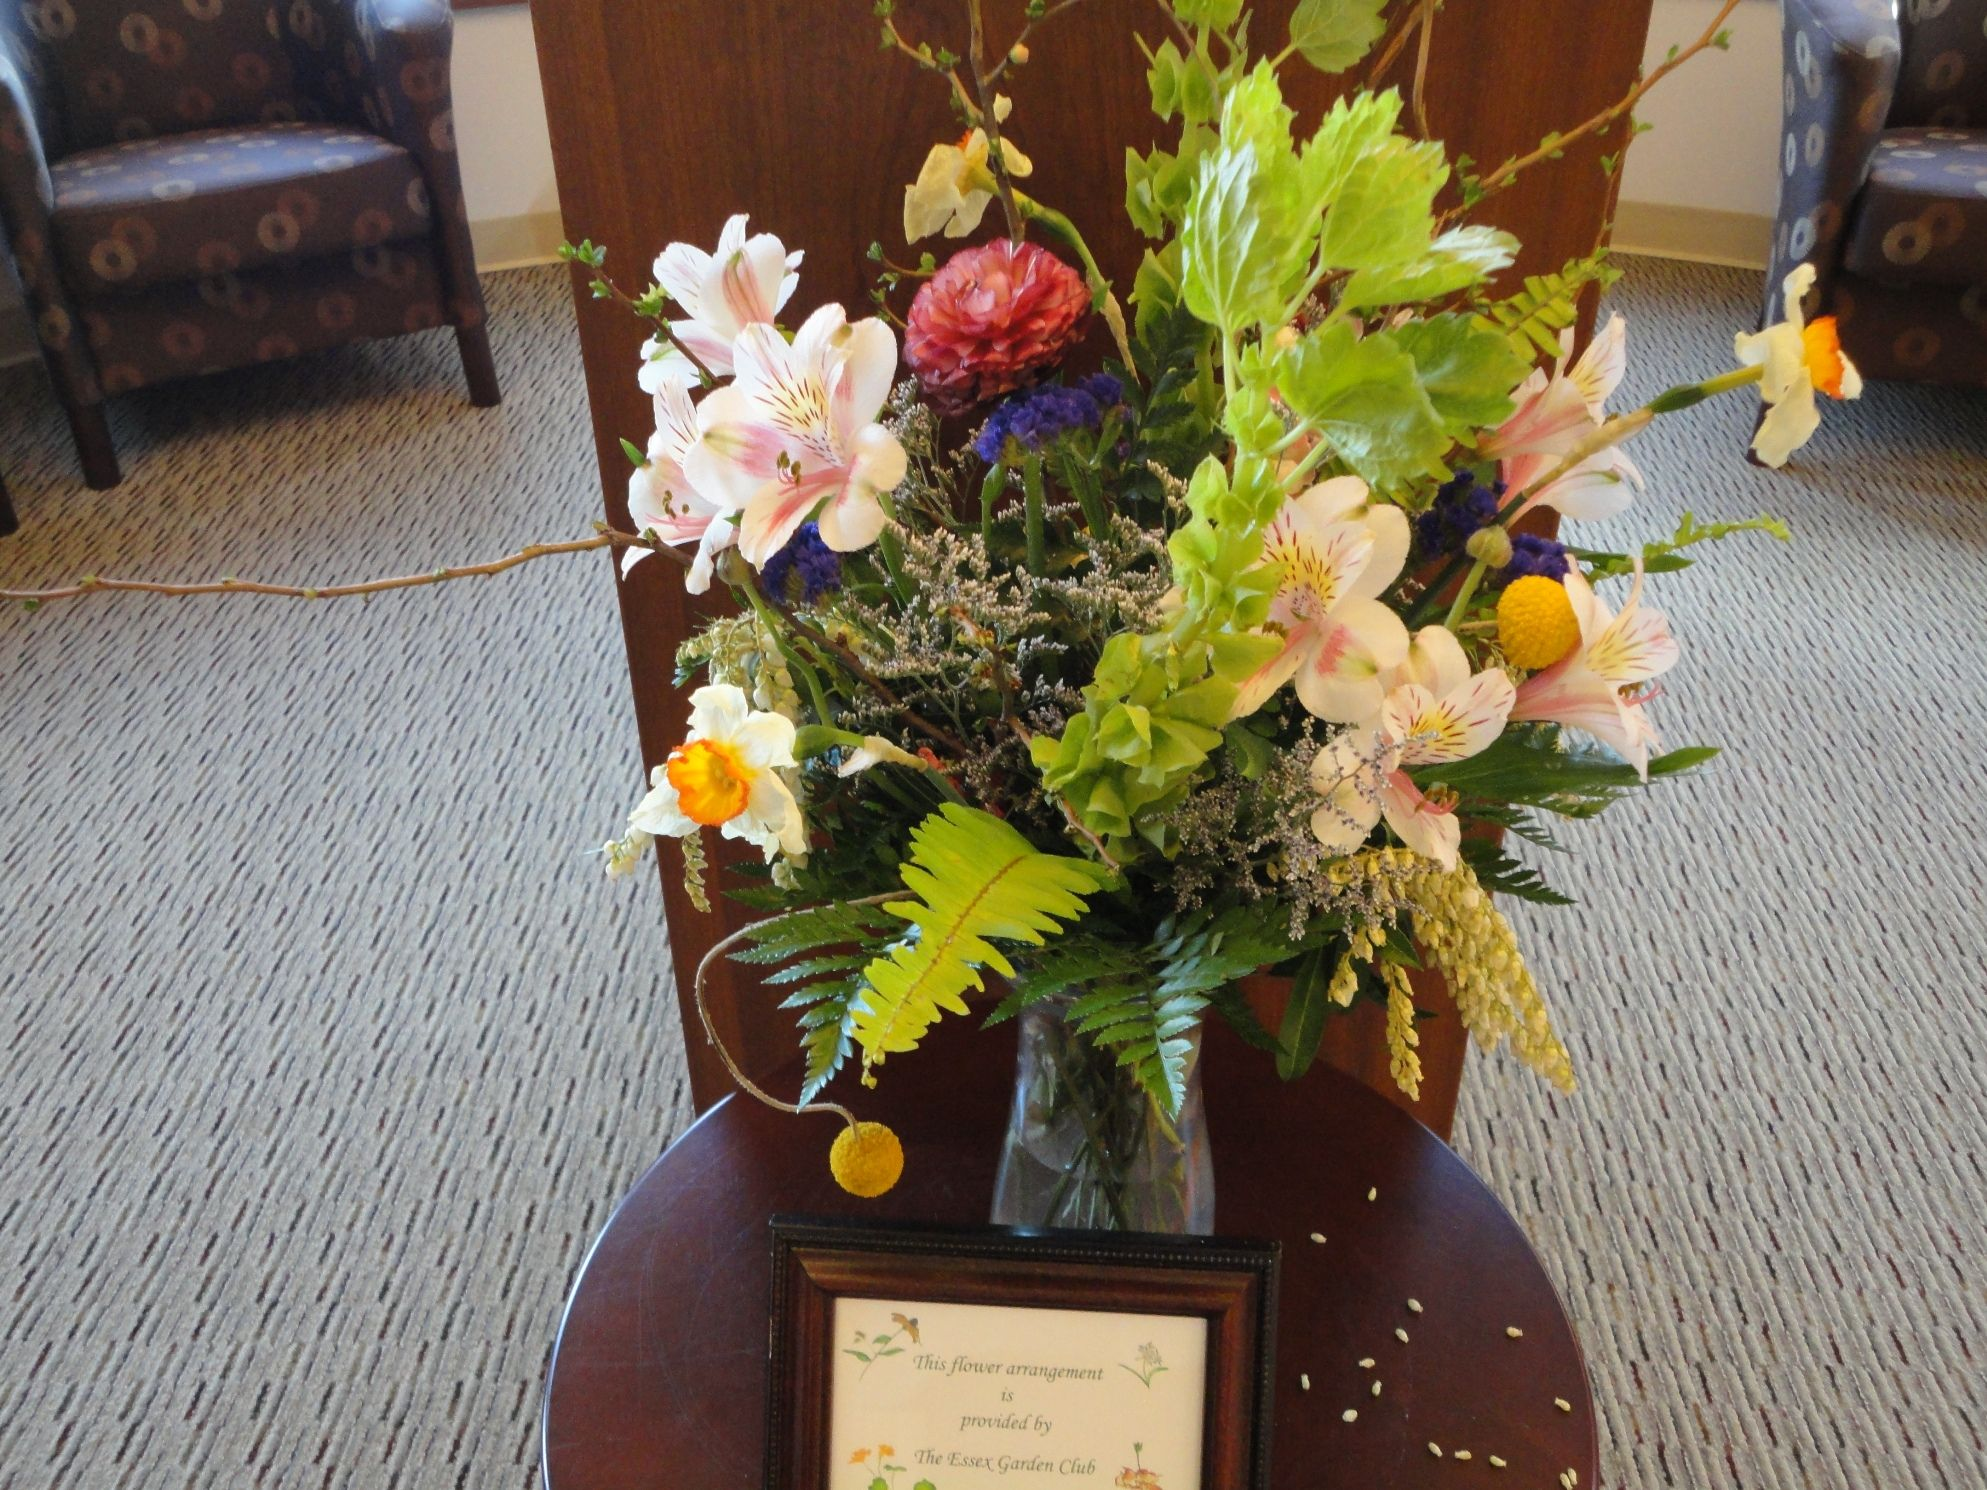 The Essex Garden Club provides the Library with beautiful bouquets every week. They also buy gardening books, videos and magazines for our collections.